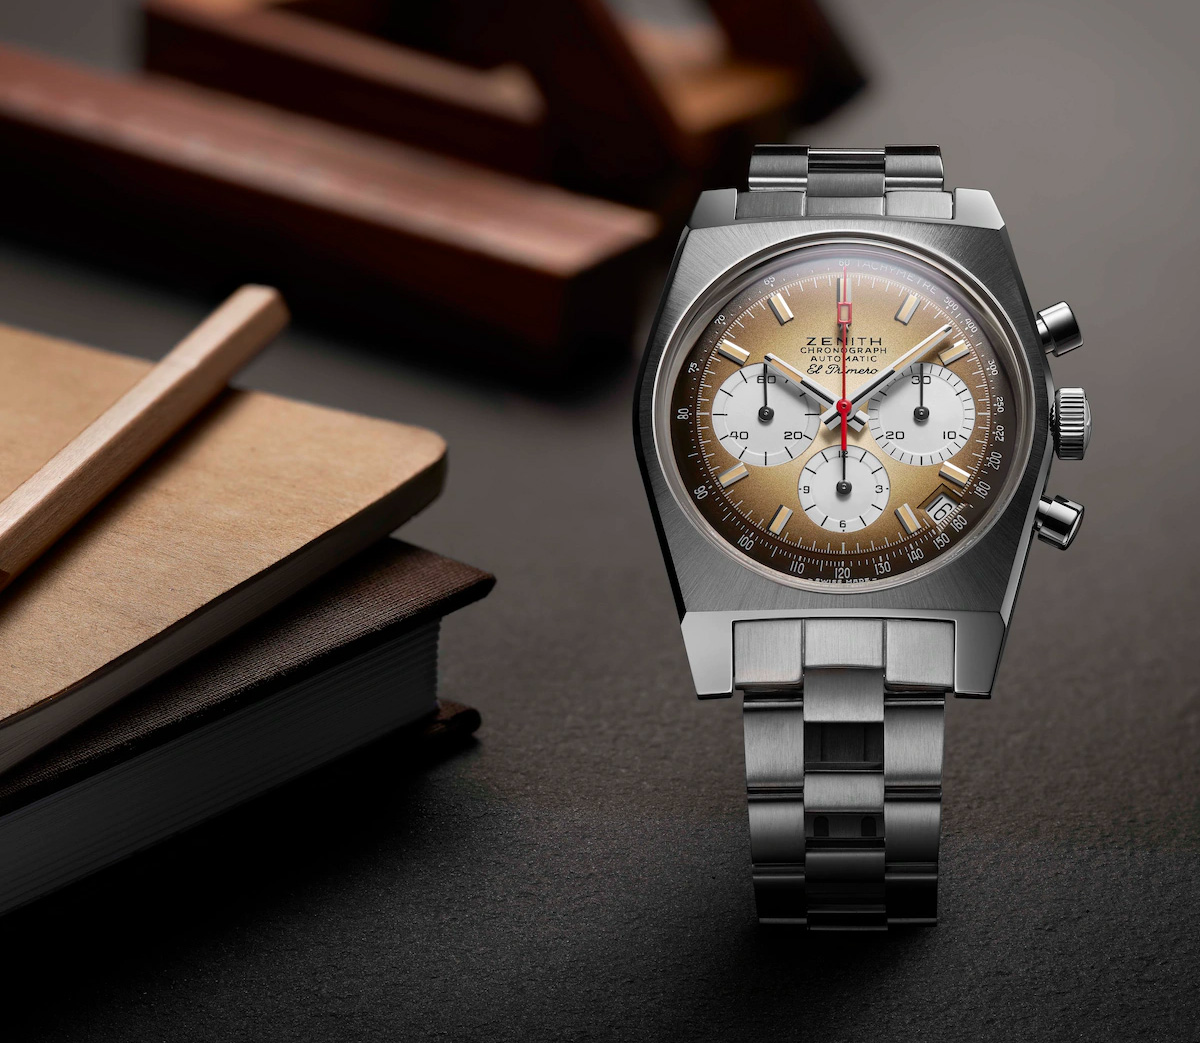 Zenith's Chronomaster Revival A385 is an Instant Classic at werd.com